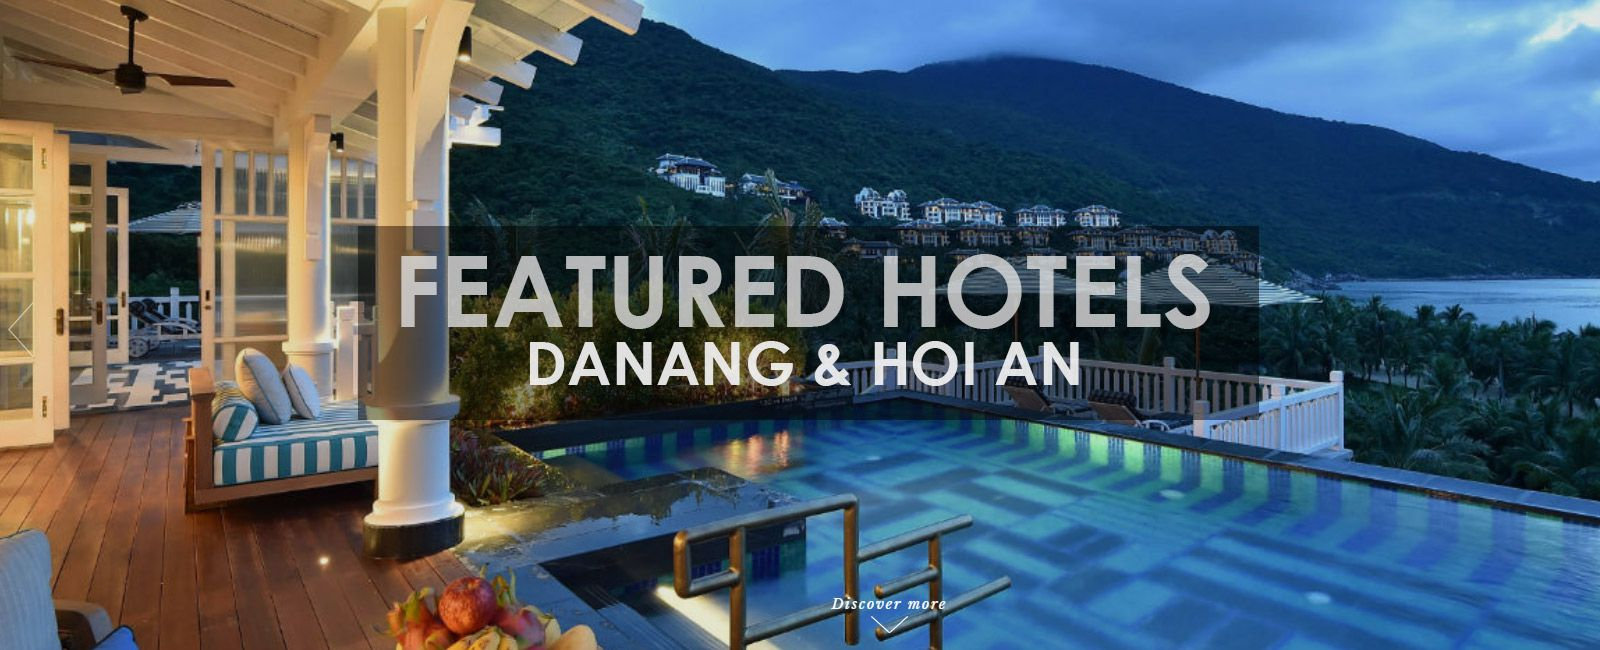 Featured Hotels Danang And Hoi An